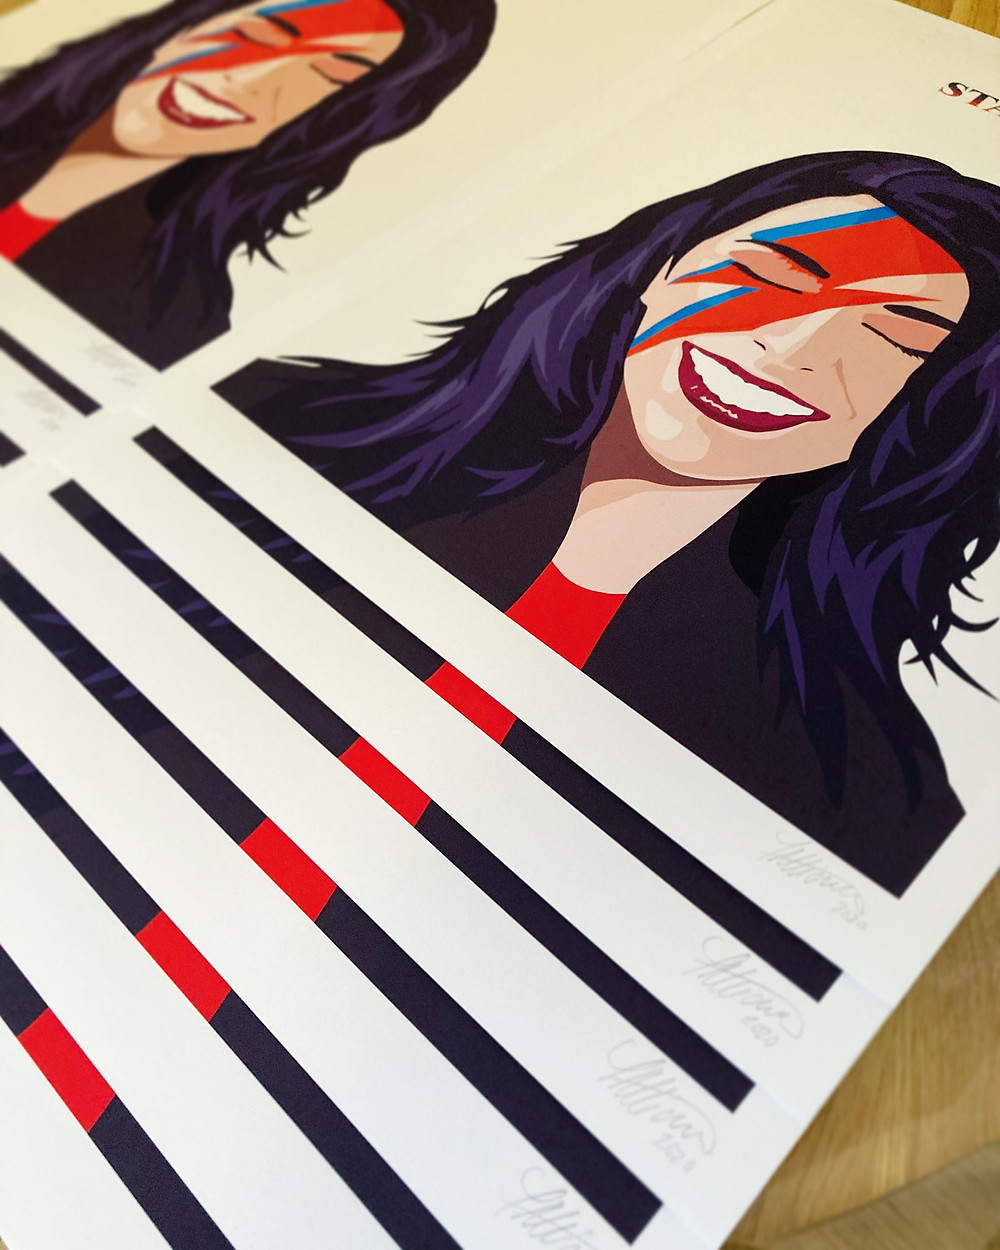 Signed and numbered editions of the Jacinda Stardust art print from artist Todd Atticus.